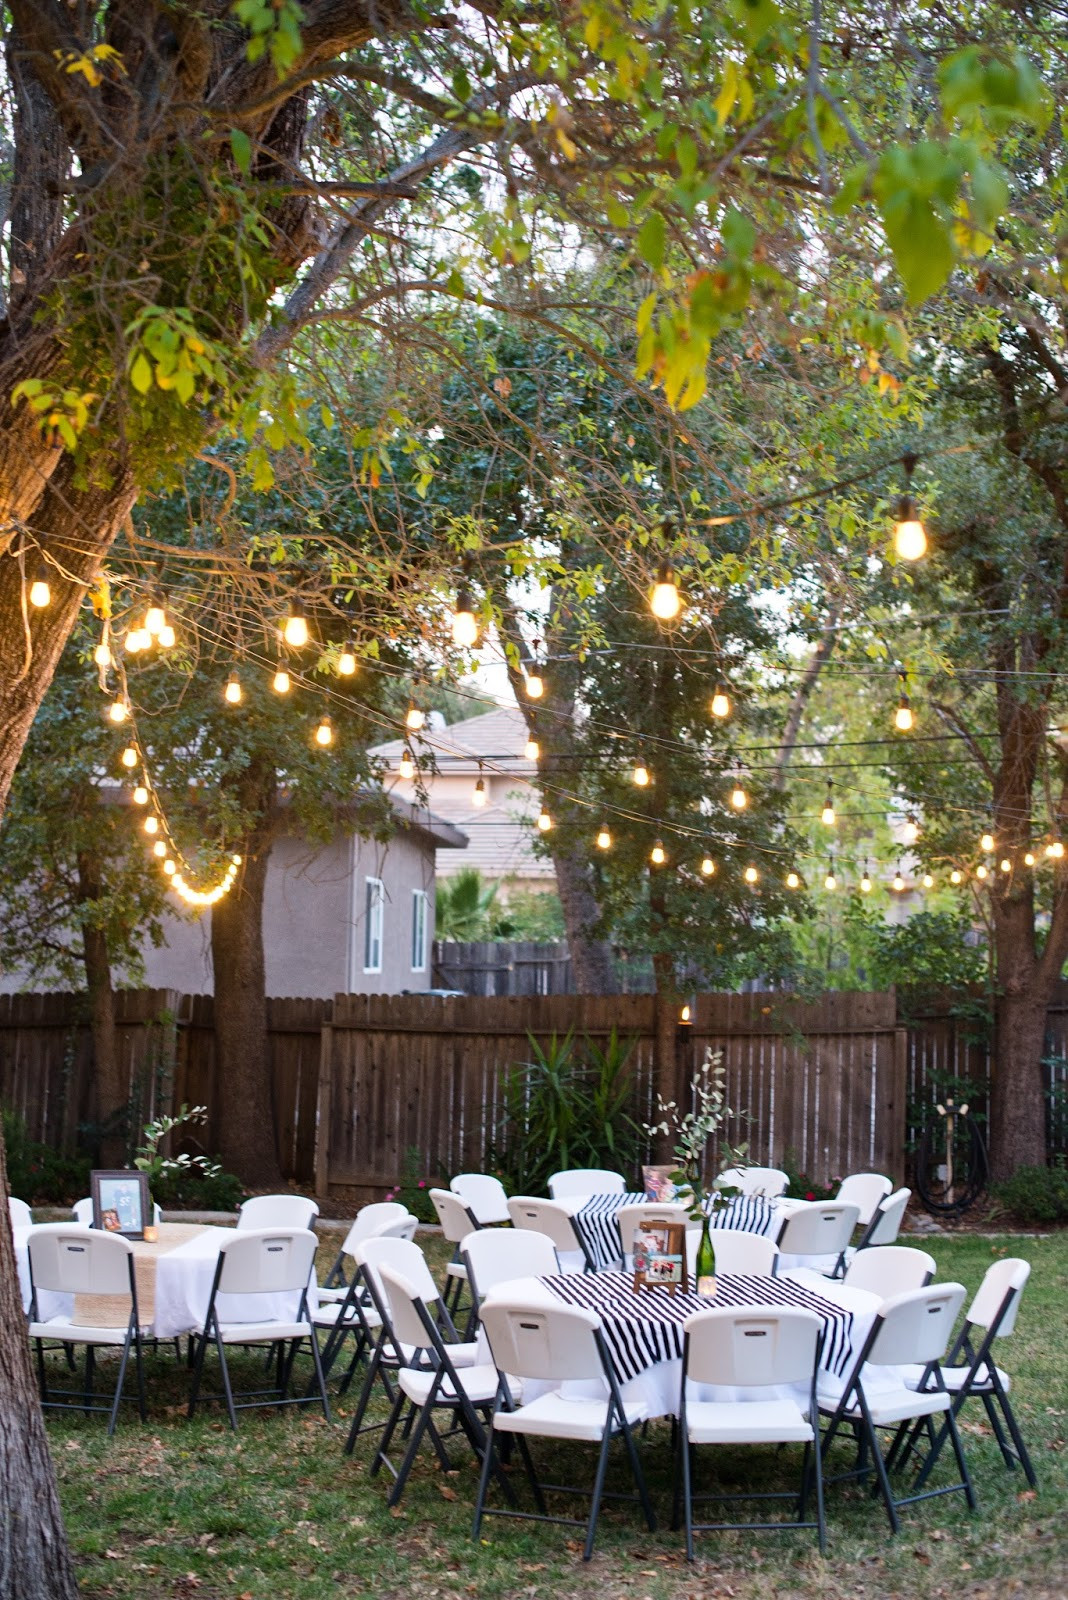 Backyard Party Set Up Ideas  Domestic Fashionista Backyard Birthday Party For the Guy